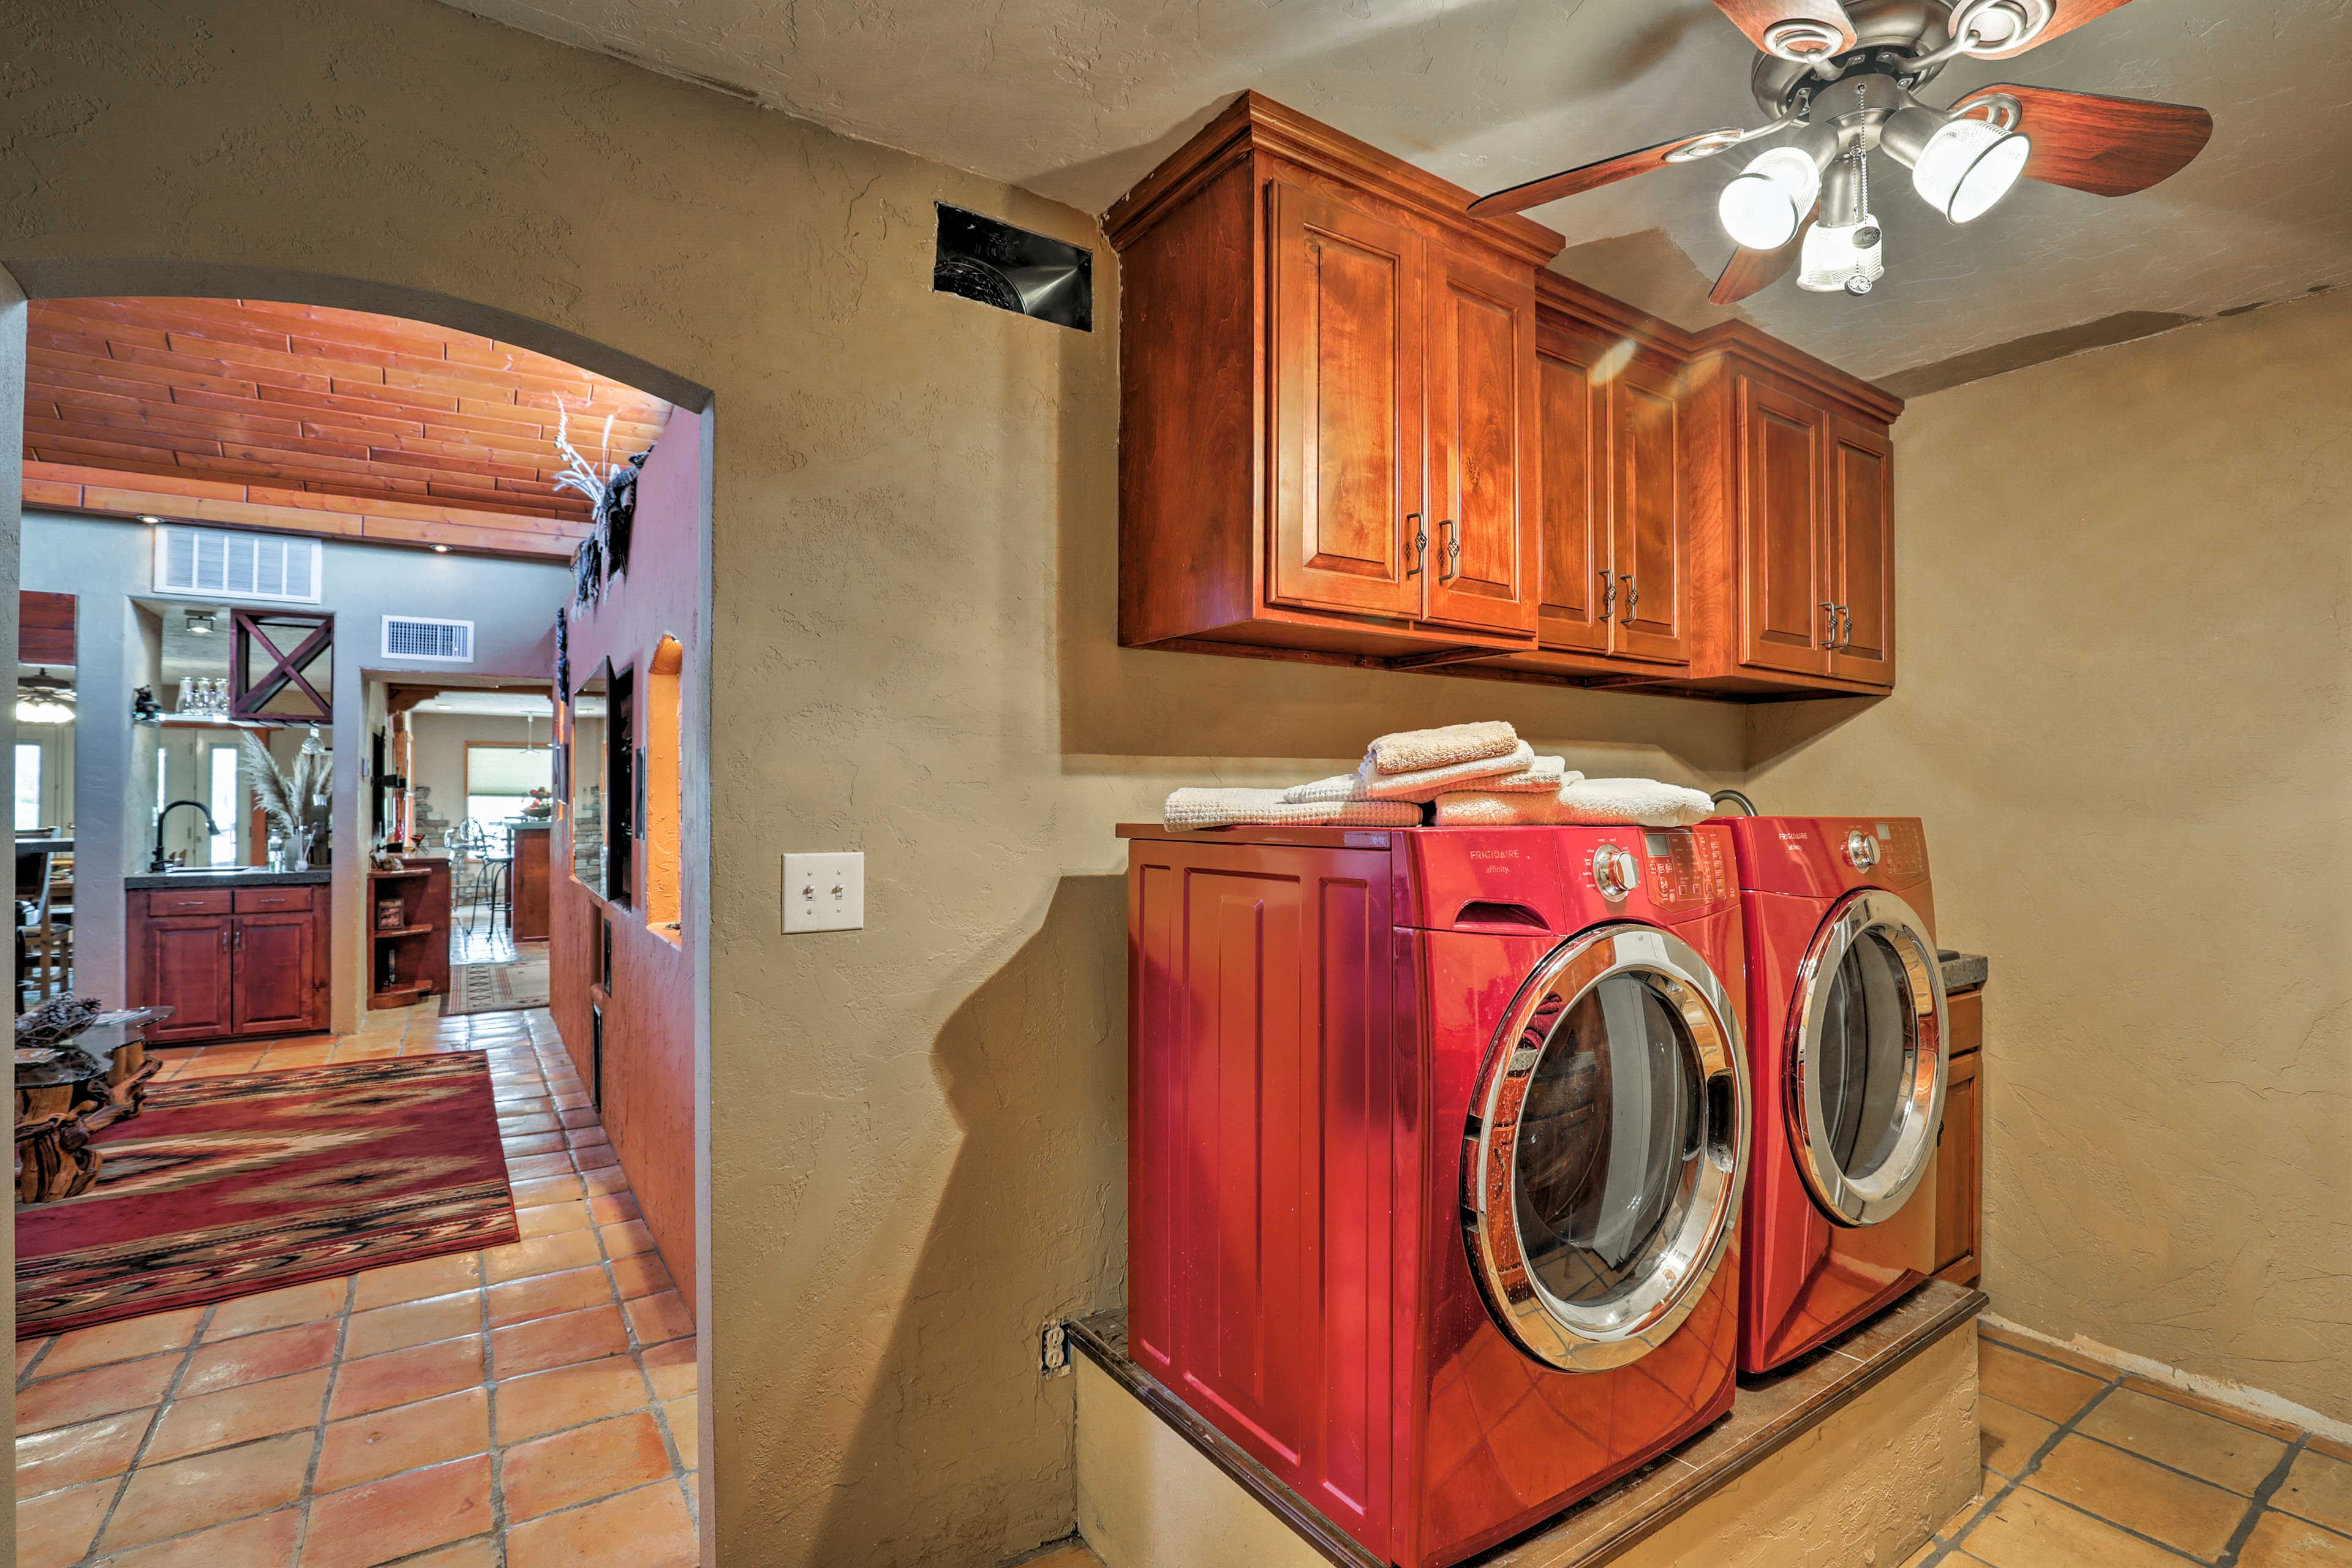 You'll be seeing double with 2 washers and dryers!